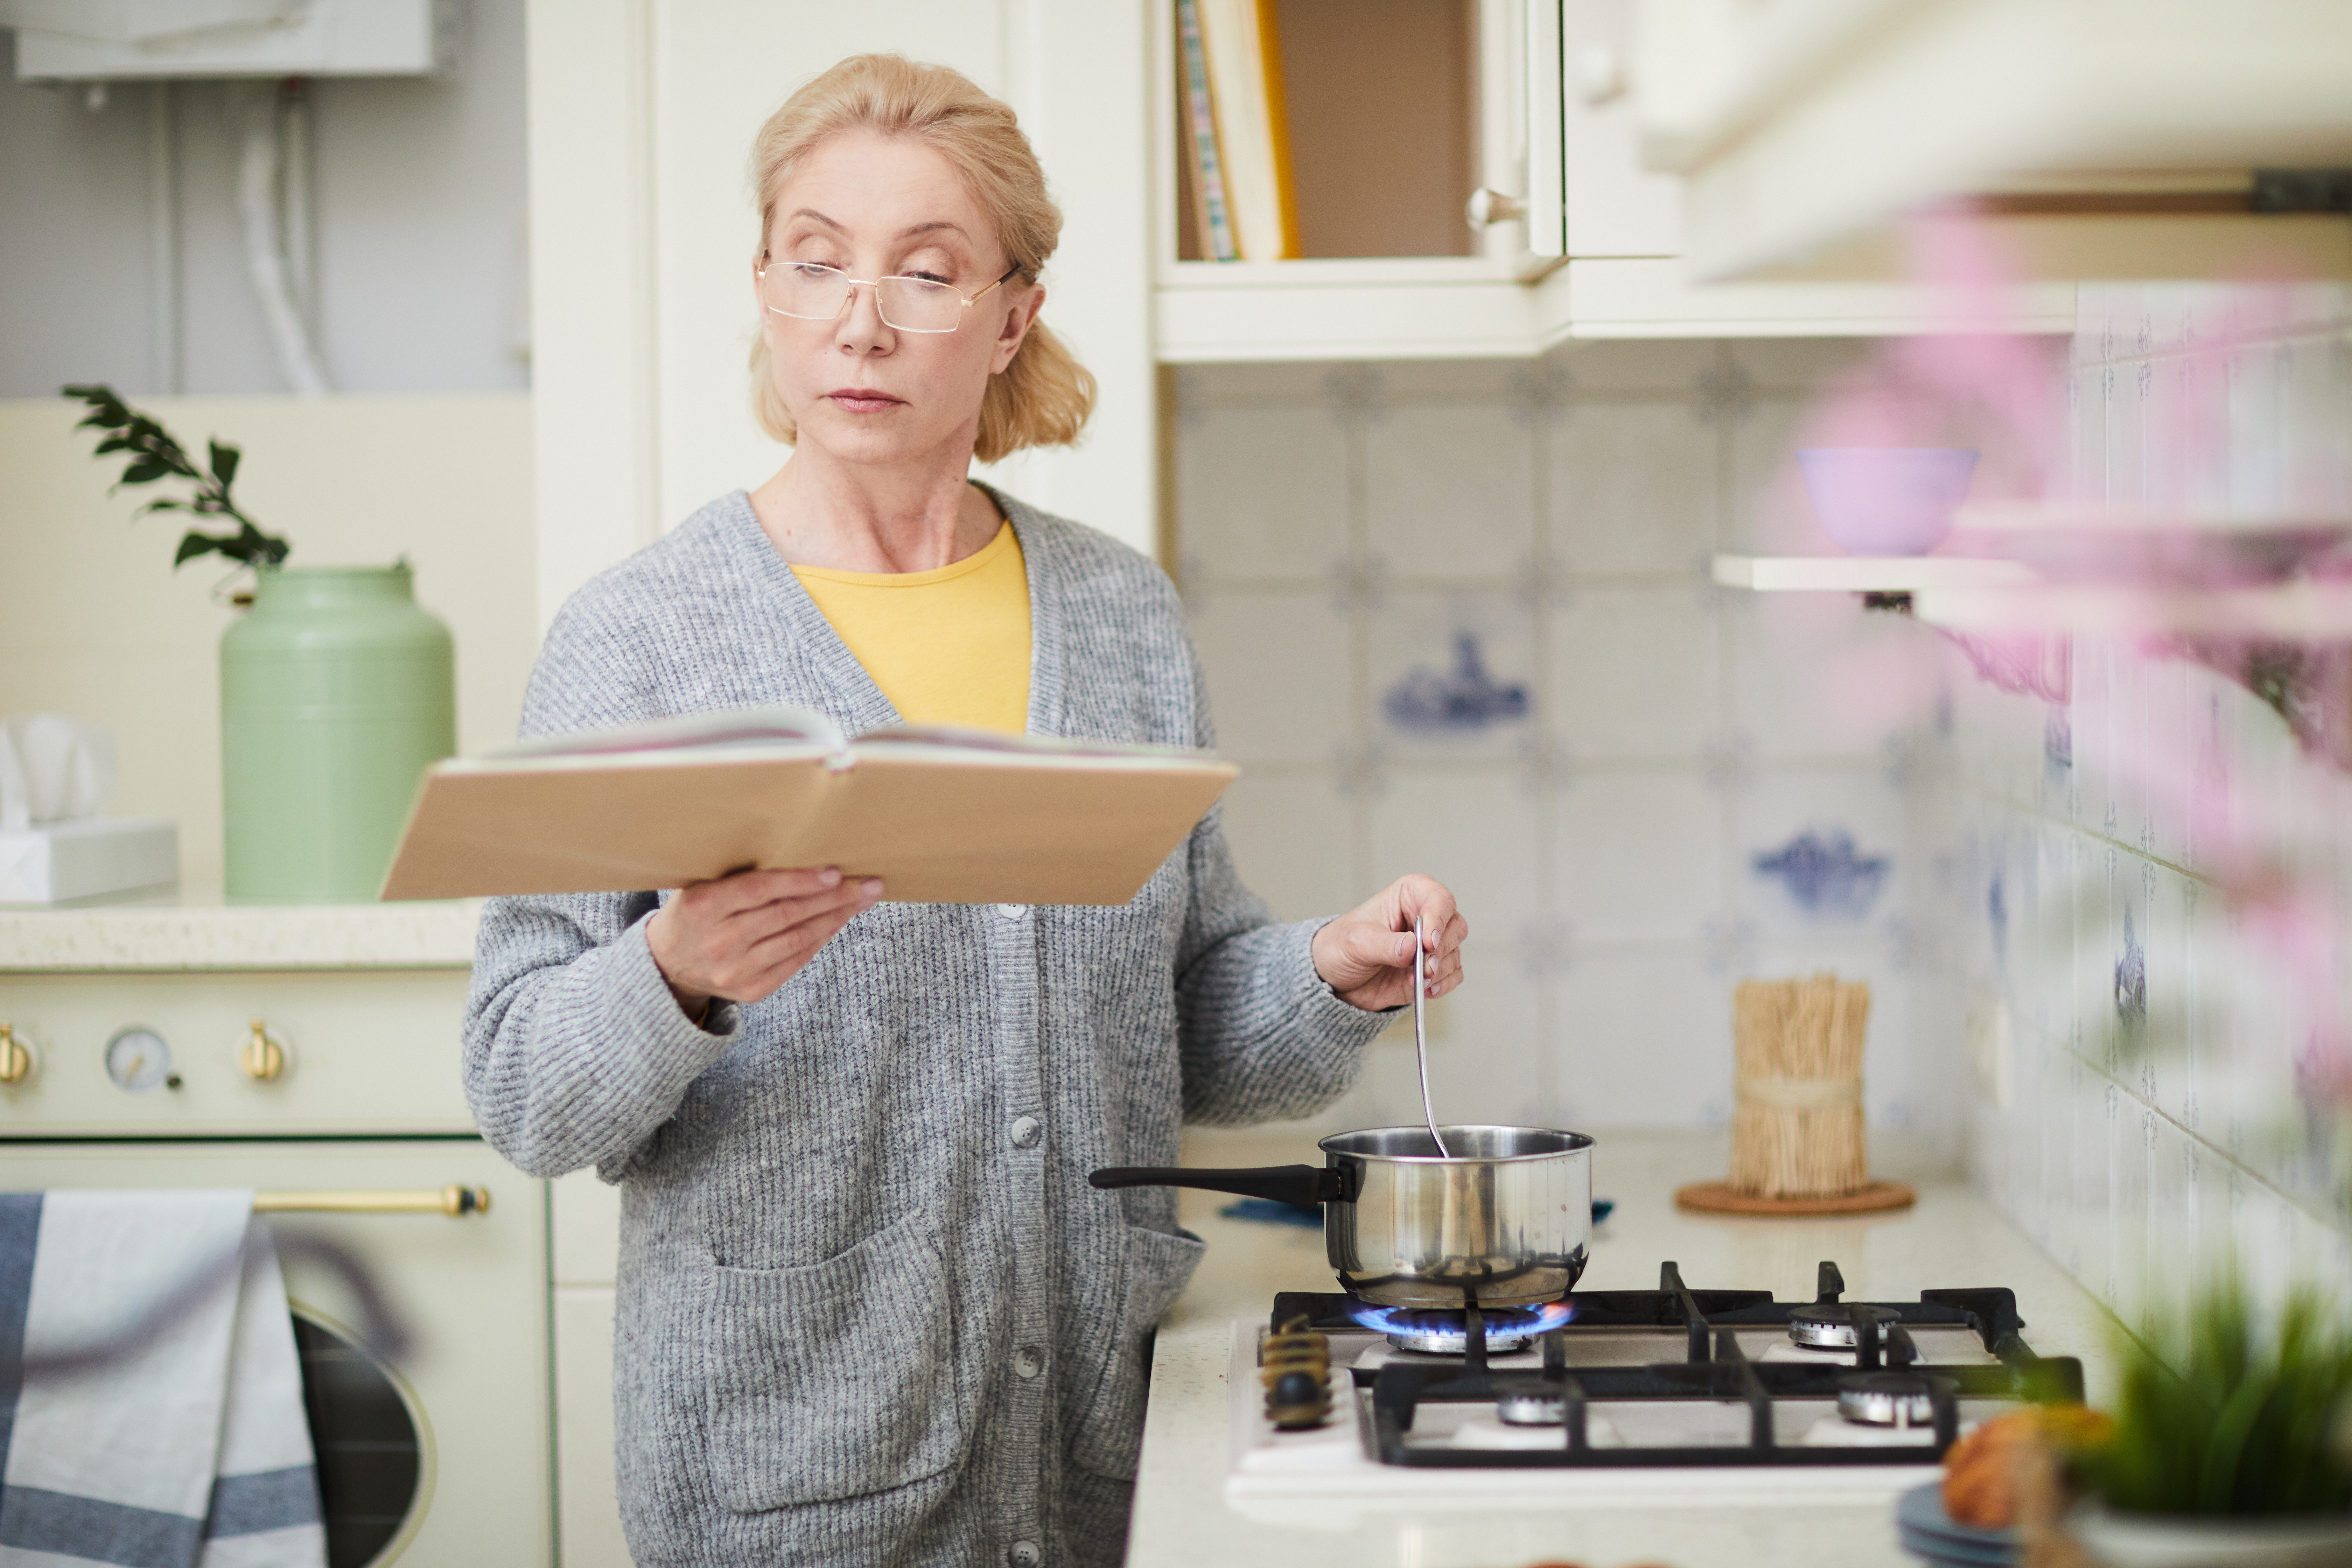 Woman Cooking In Kitchen With Recipe Card Binder